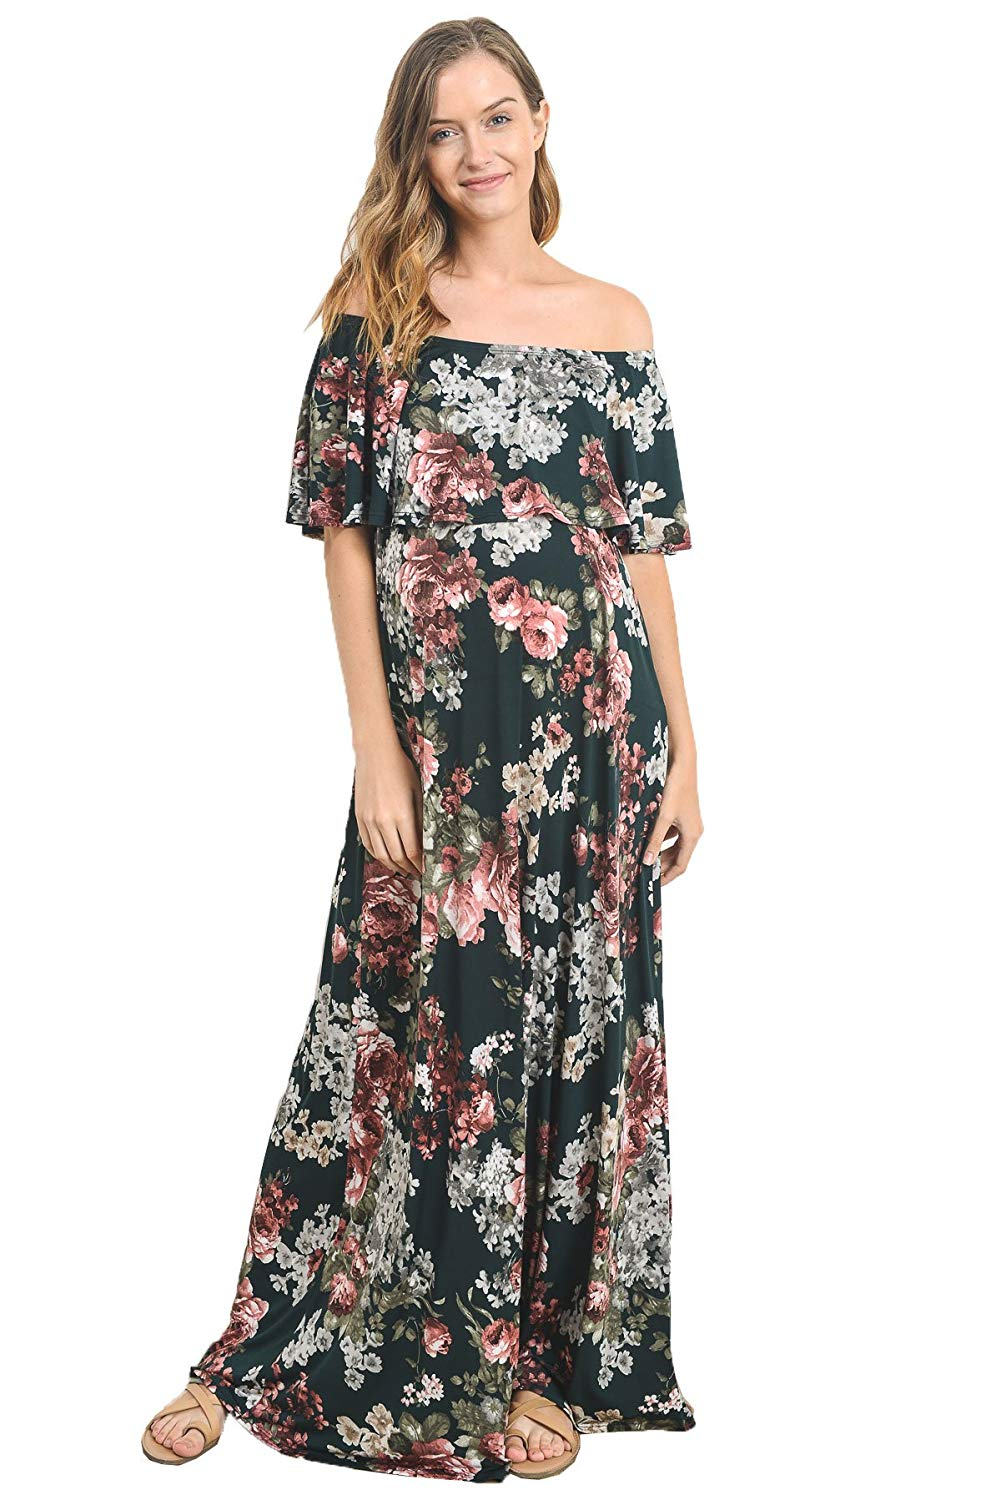 Green Floral Maternity Maxi Dress - Mommylicious